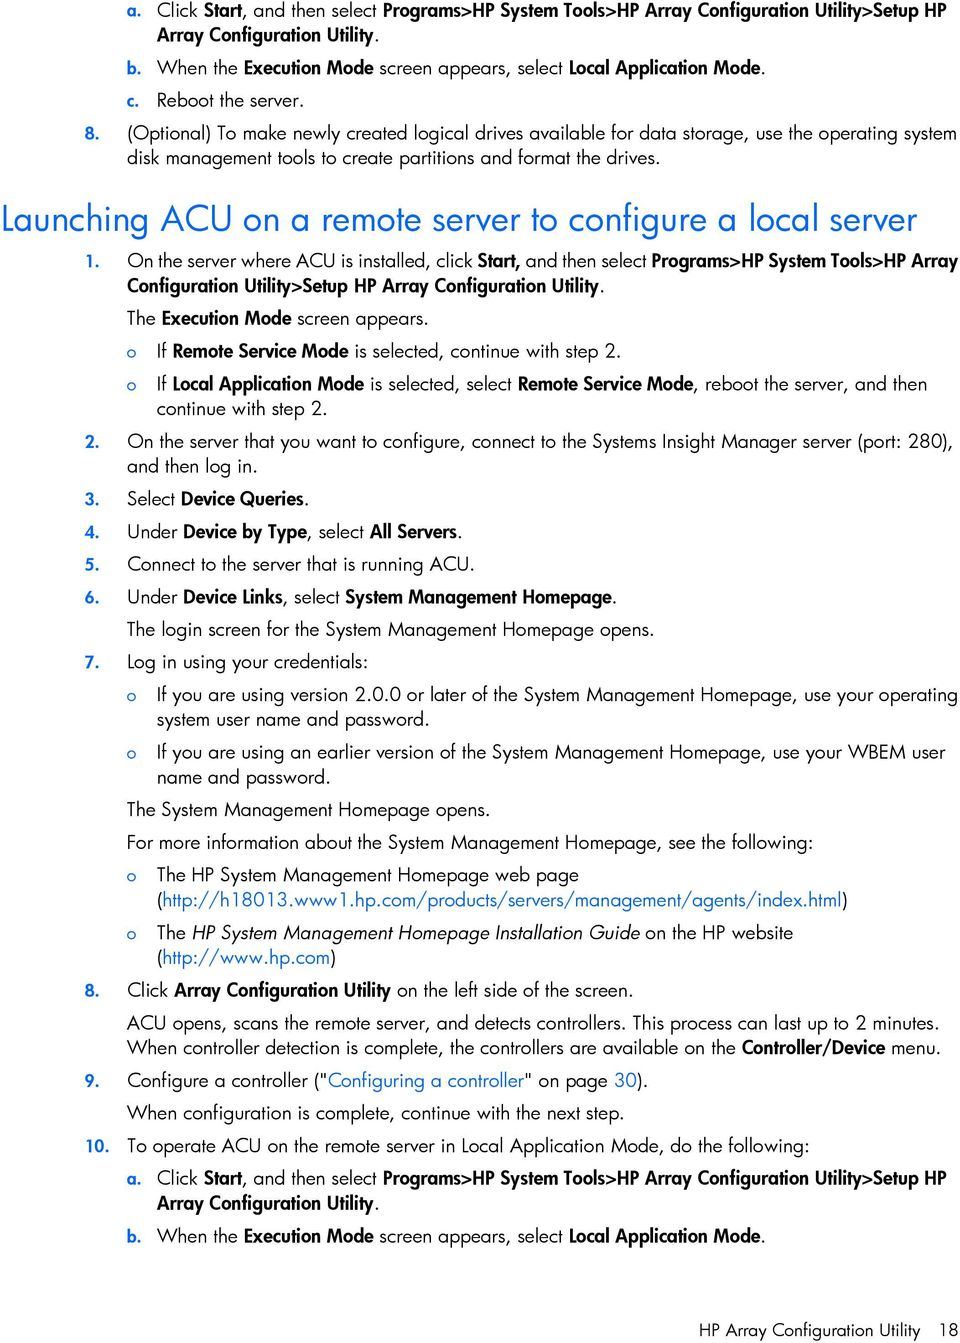 Launching ACU n a remte server t cnfigure a lcal server 1.